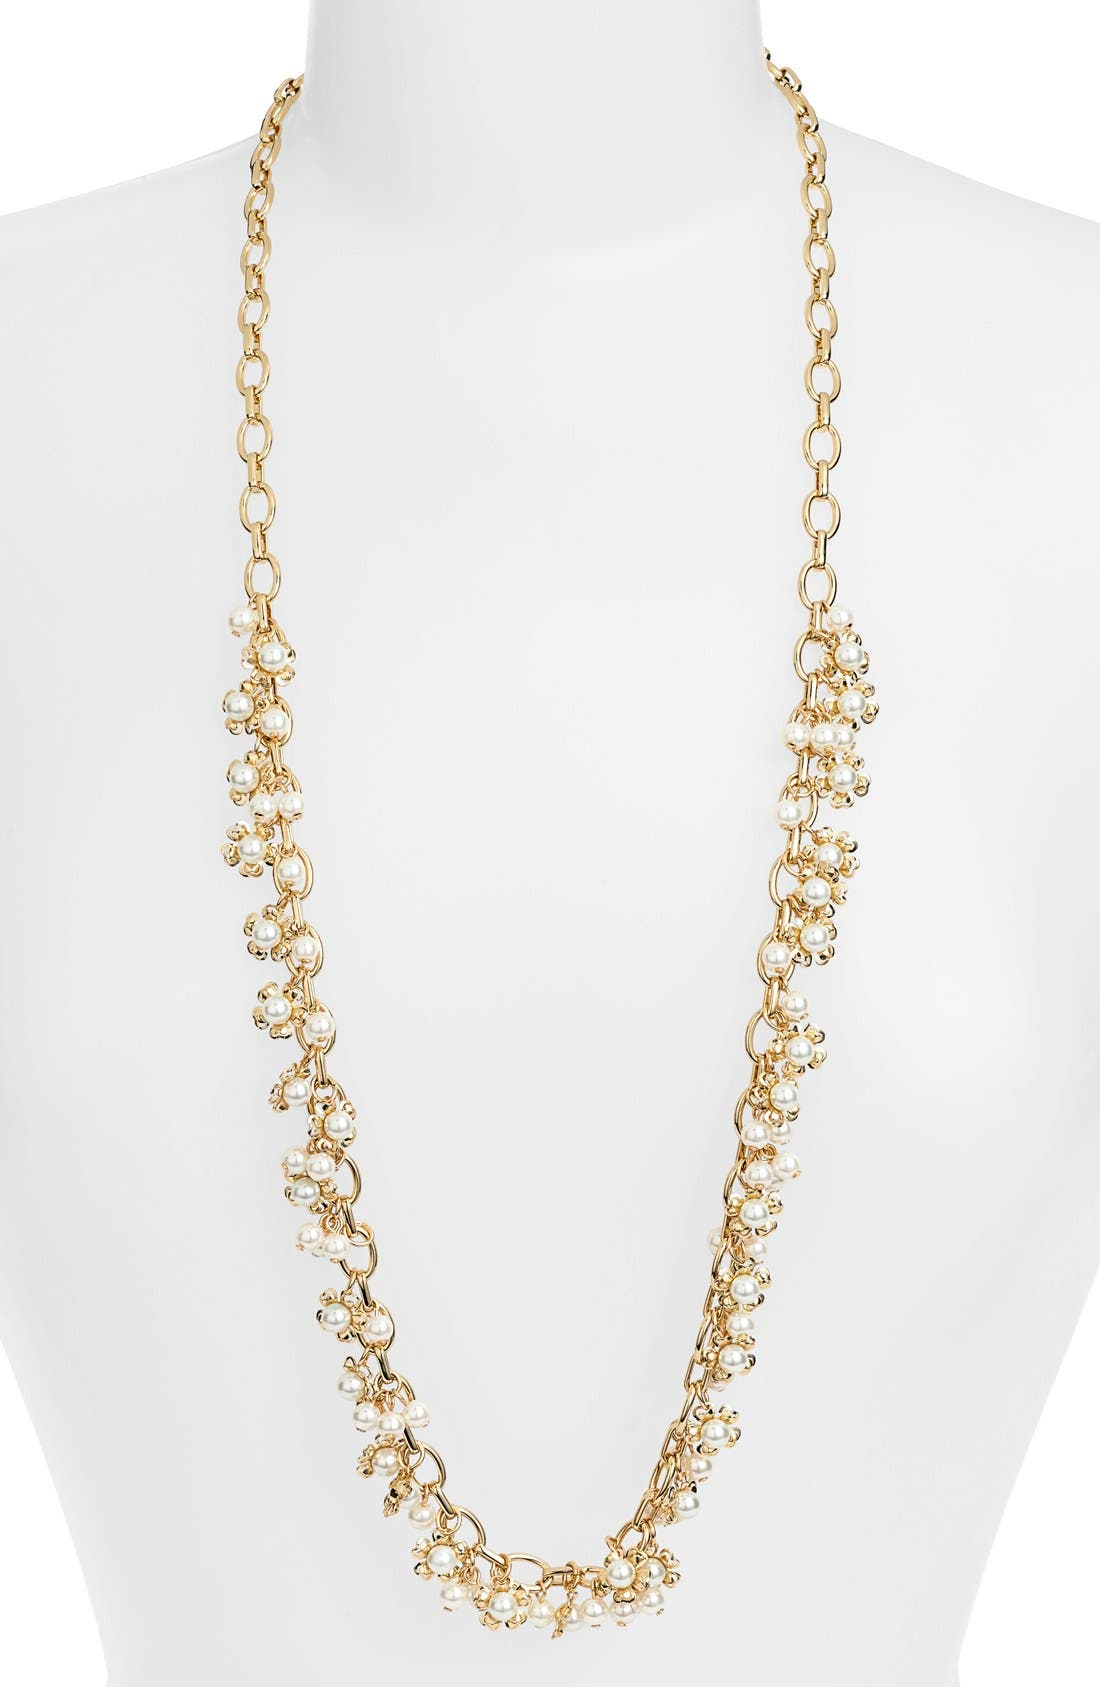 Alternate Image 1 Selected - Tory Burch 'Katie' Floral Cluster Long Necklace